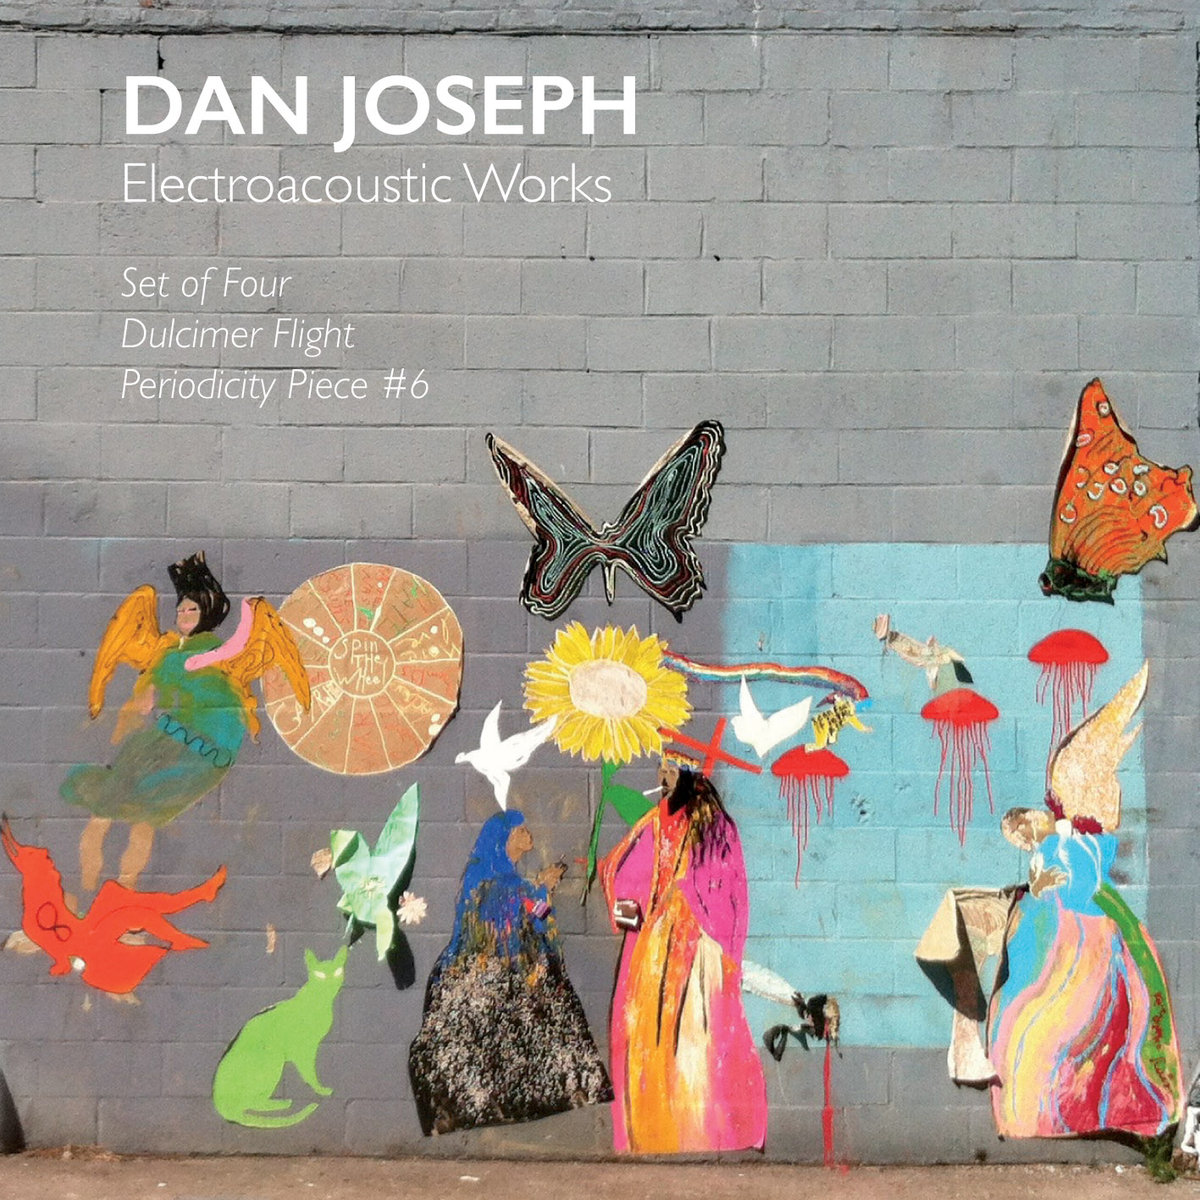 Dan Joseph's Electroacoustic Works: Birdwatching in Levi's with John Cage